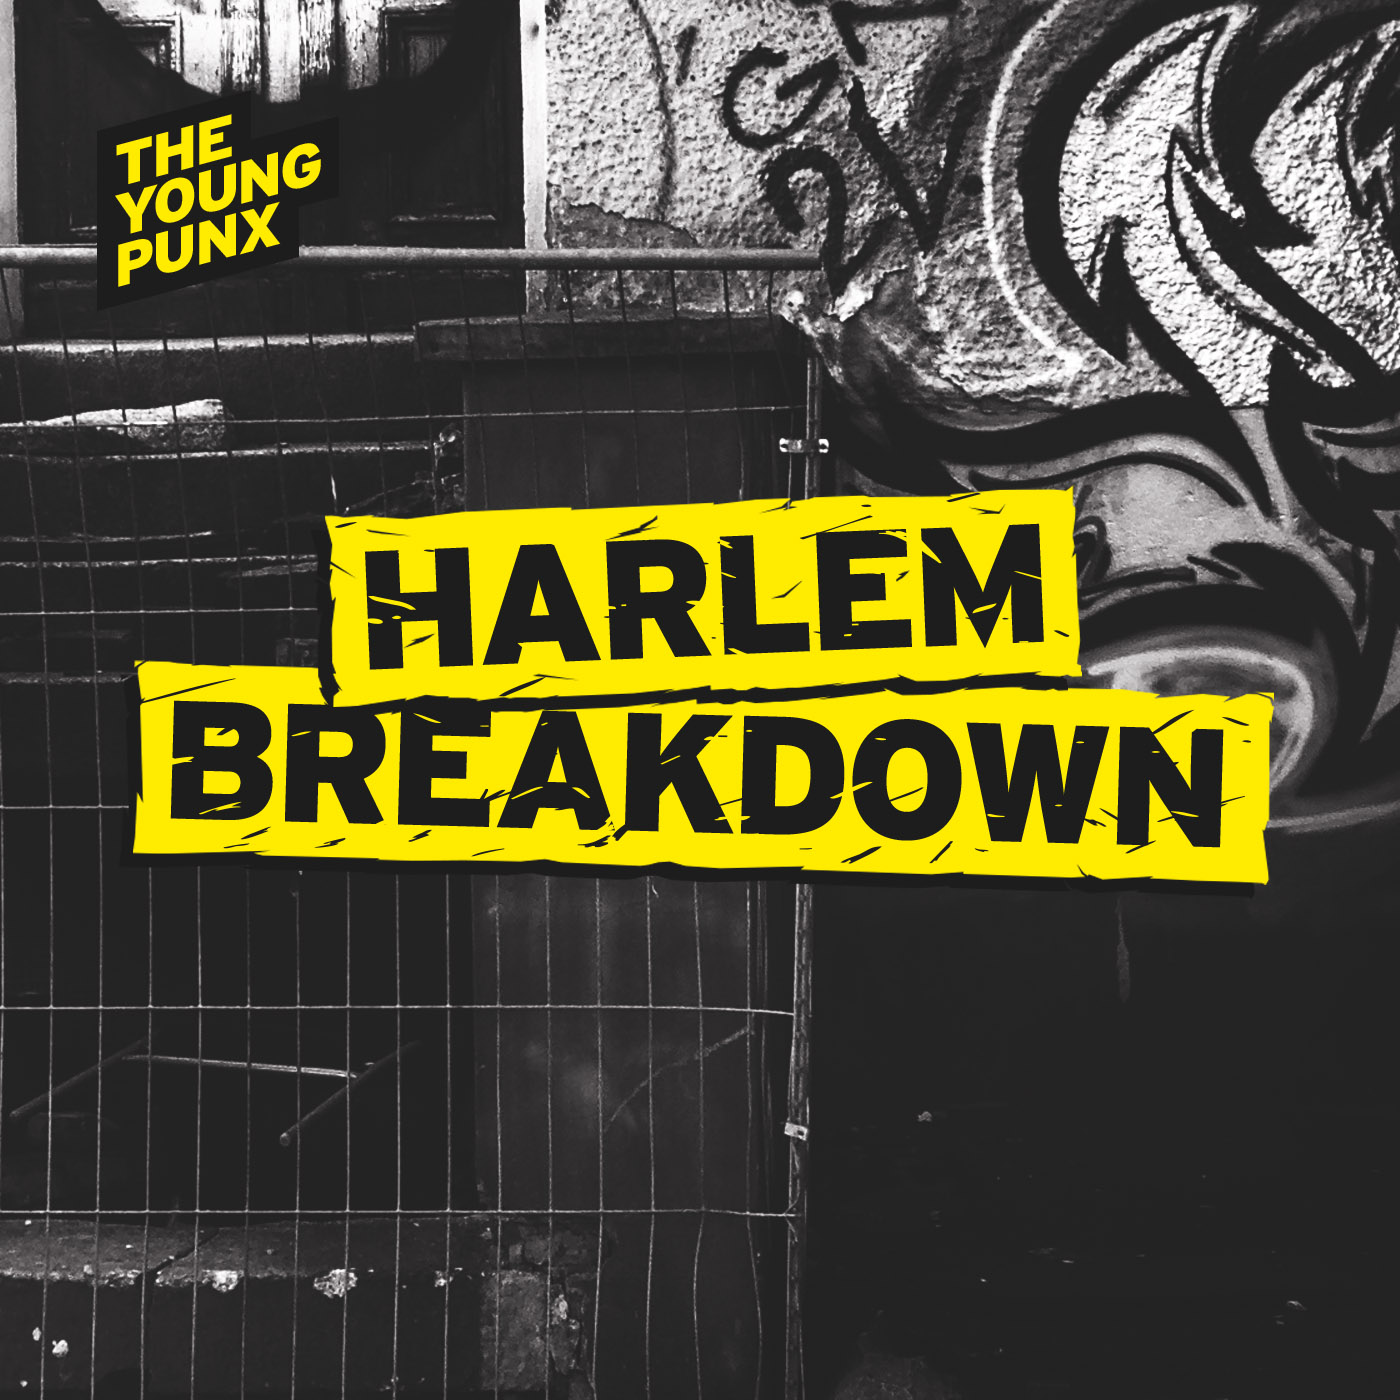 The Young Punx - Harlem Breakdown Mofohifi